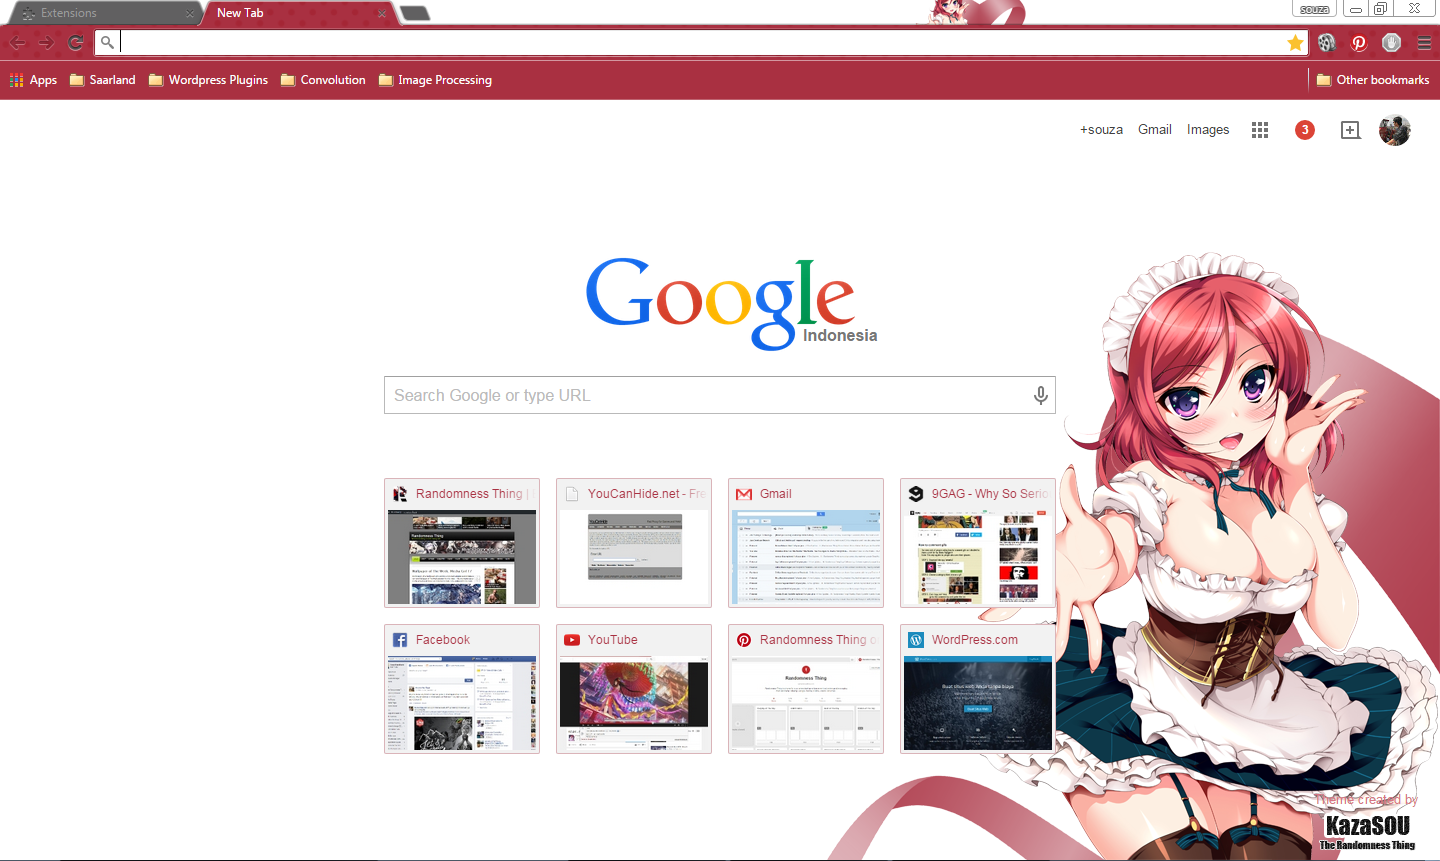 Love themes for gmail - The Same Maid Outfit Wearing Nishikino Maki Is Now Available As A Google Chrome Theme For